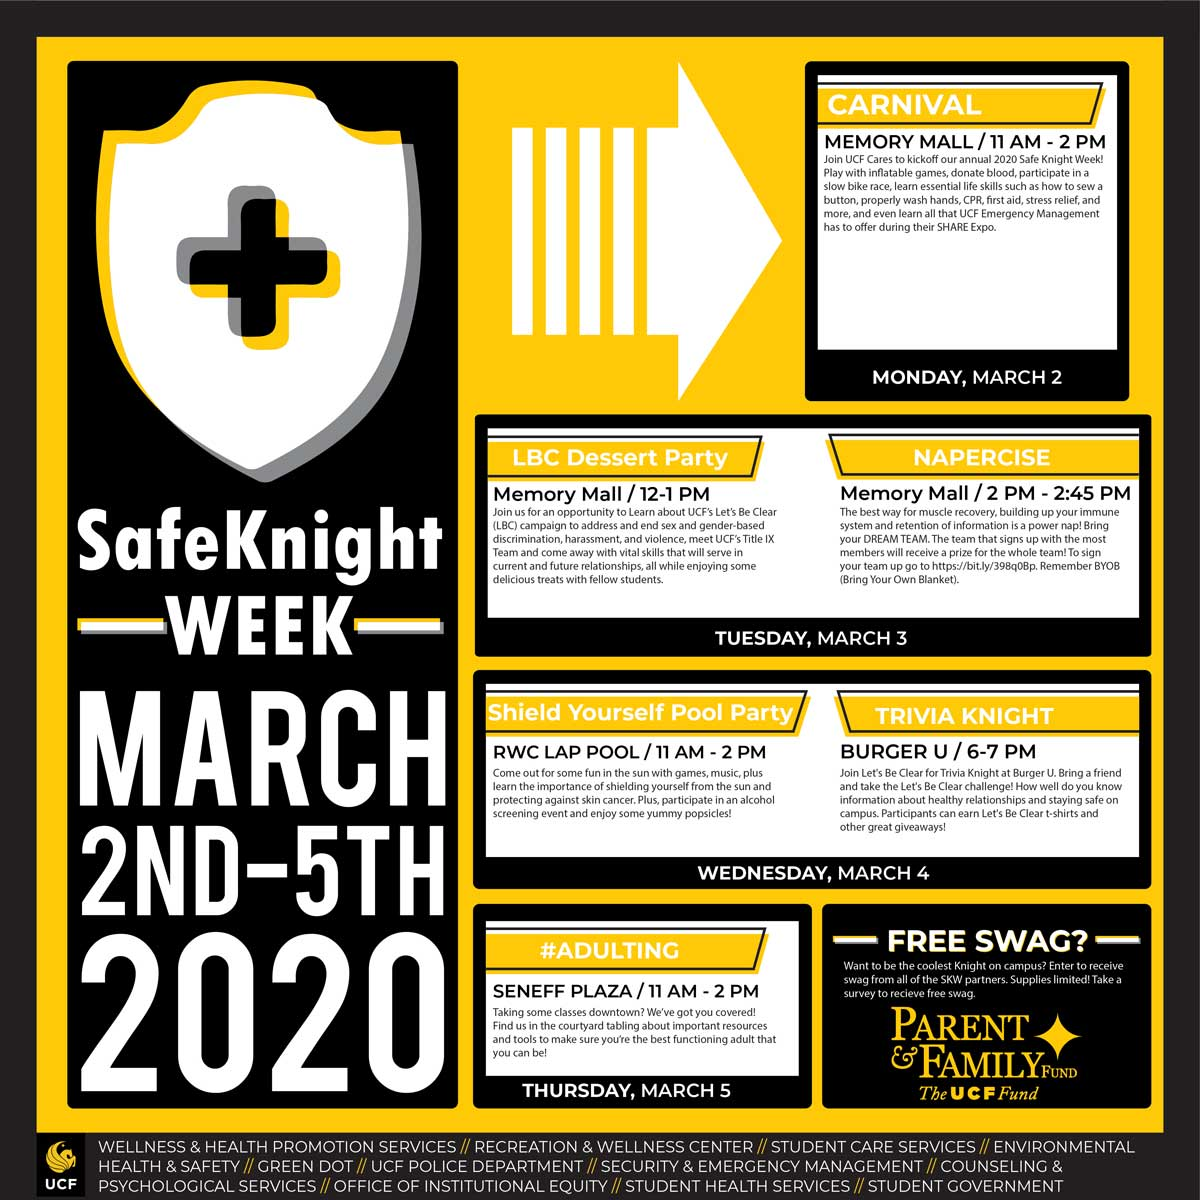 black and yellow graphic outlining Safe Knight Week's events